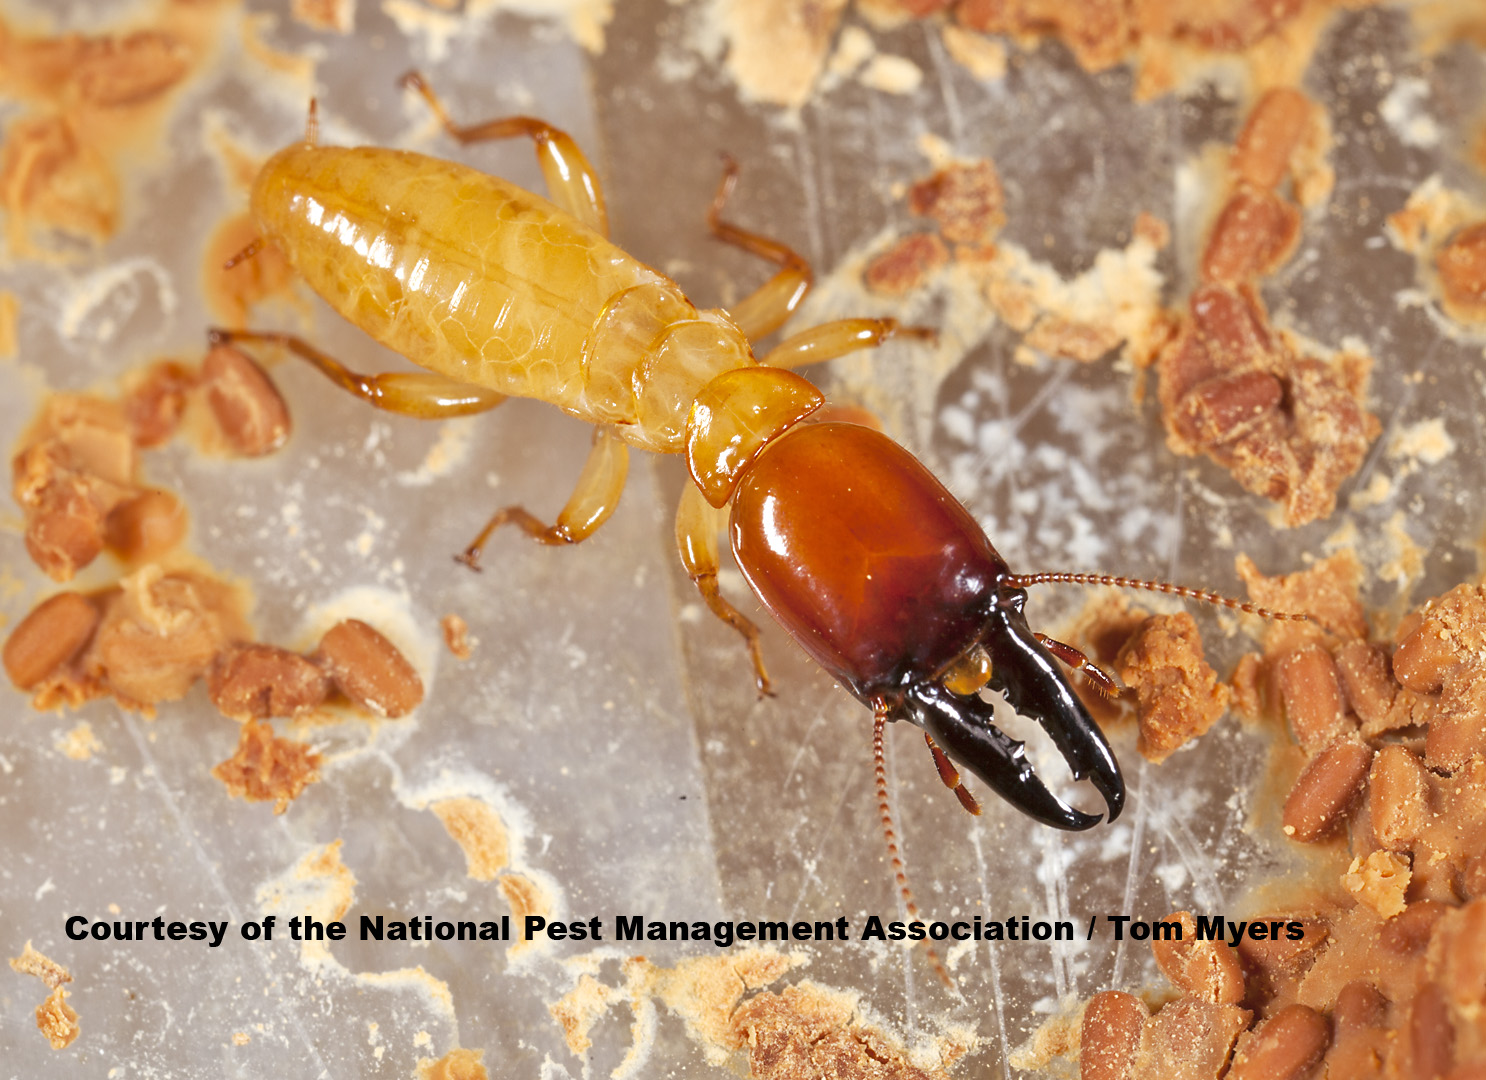 Dampwood Termites - Termite Information for Kids